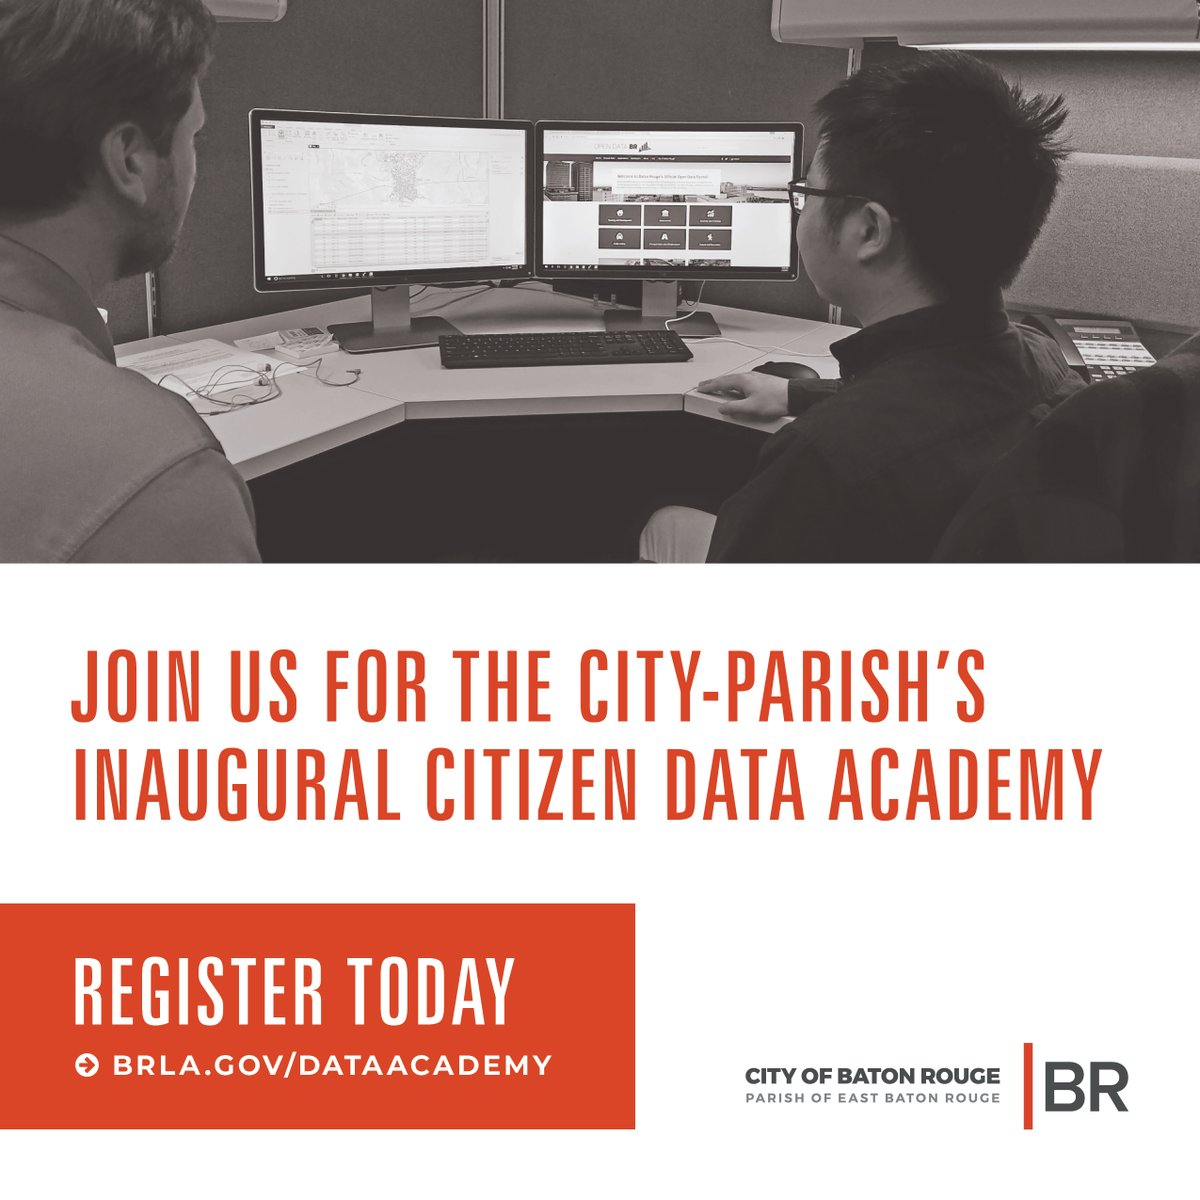 Our inaugural Citizen Data Academy begins Oct. 13 and you won't want to miss it! Learn how to unlock the power of our City-Parish #data – where it's located, what it includes, & how to use #opendata and #GIS to improve quality of life in EBR. Register now: